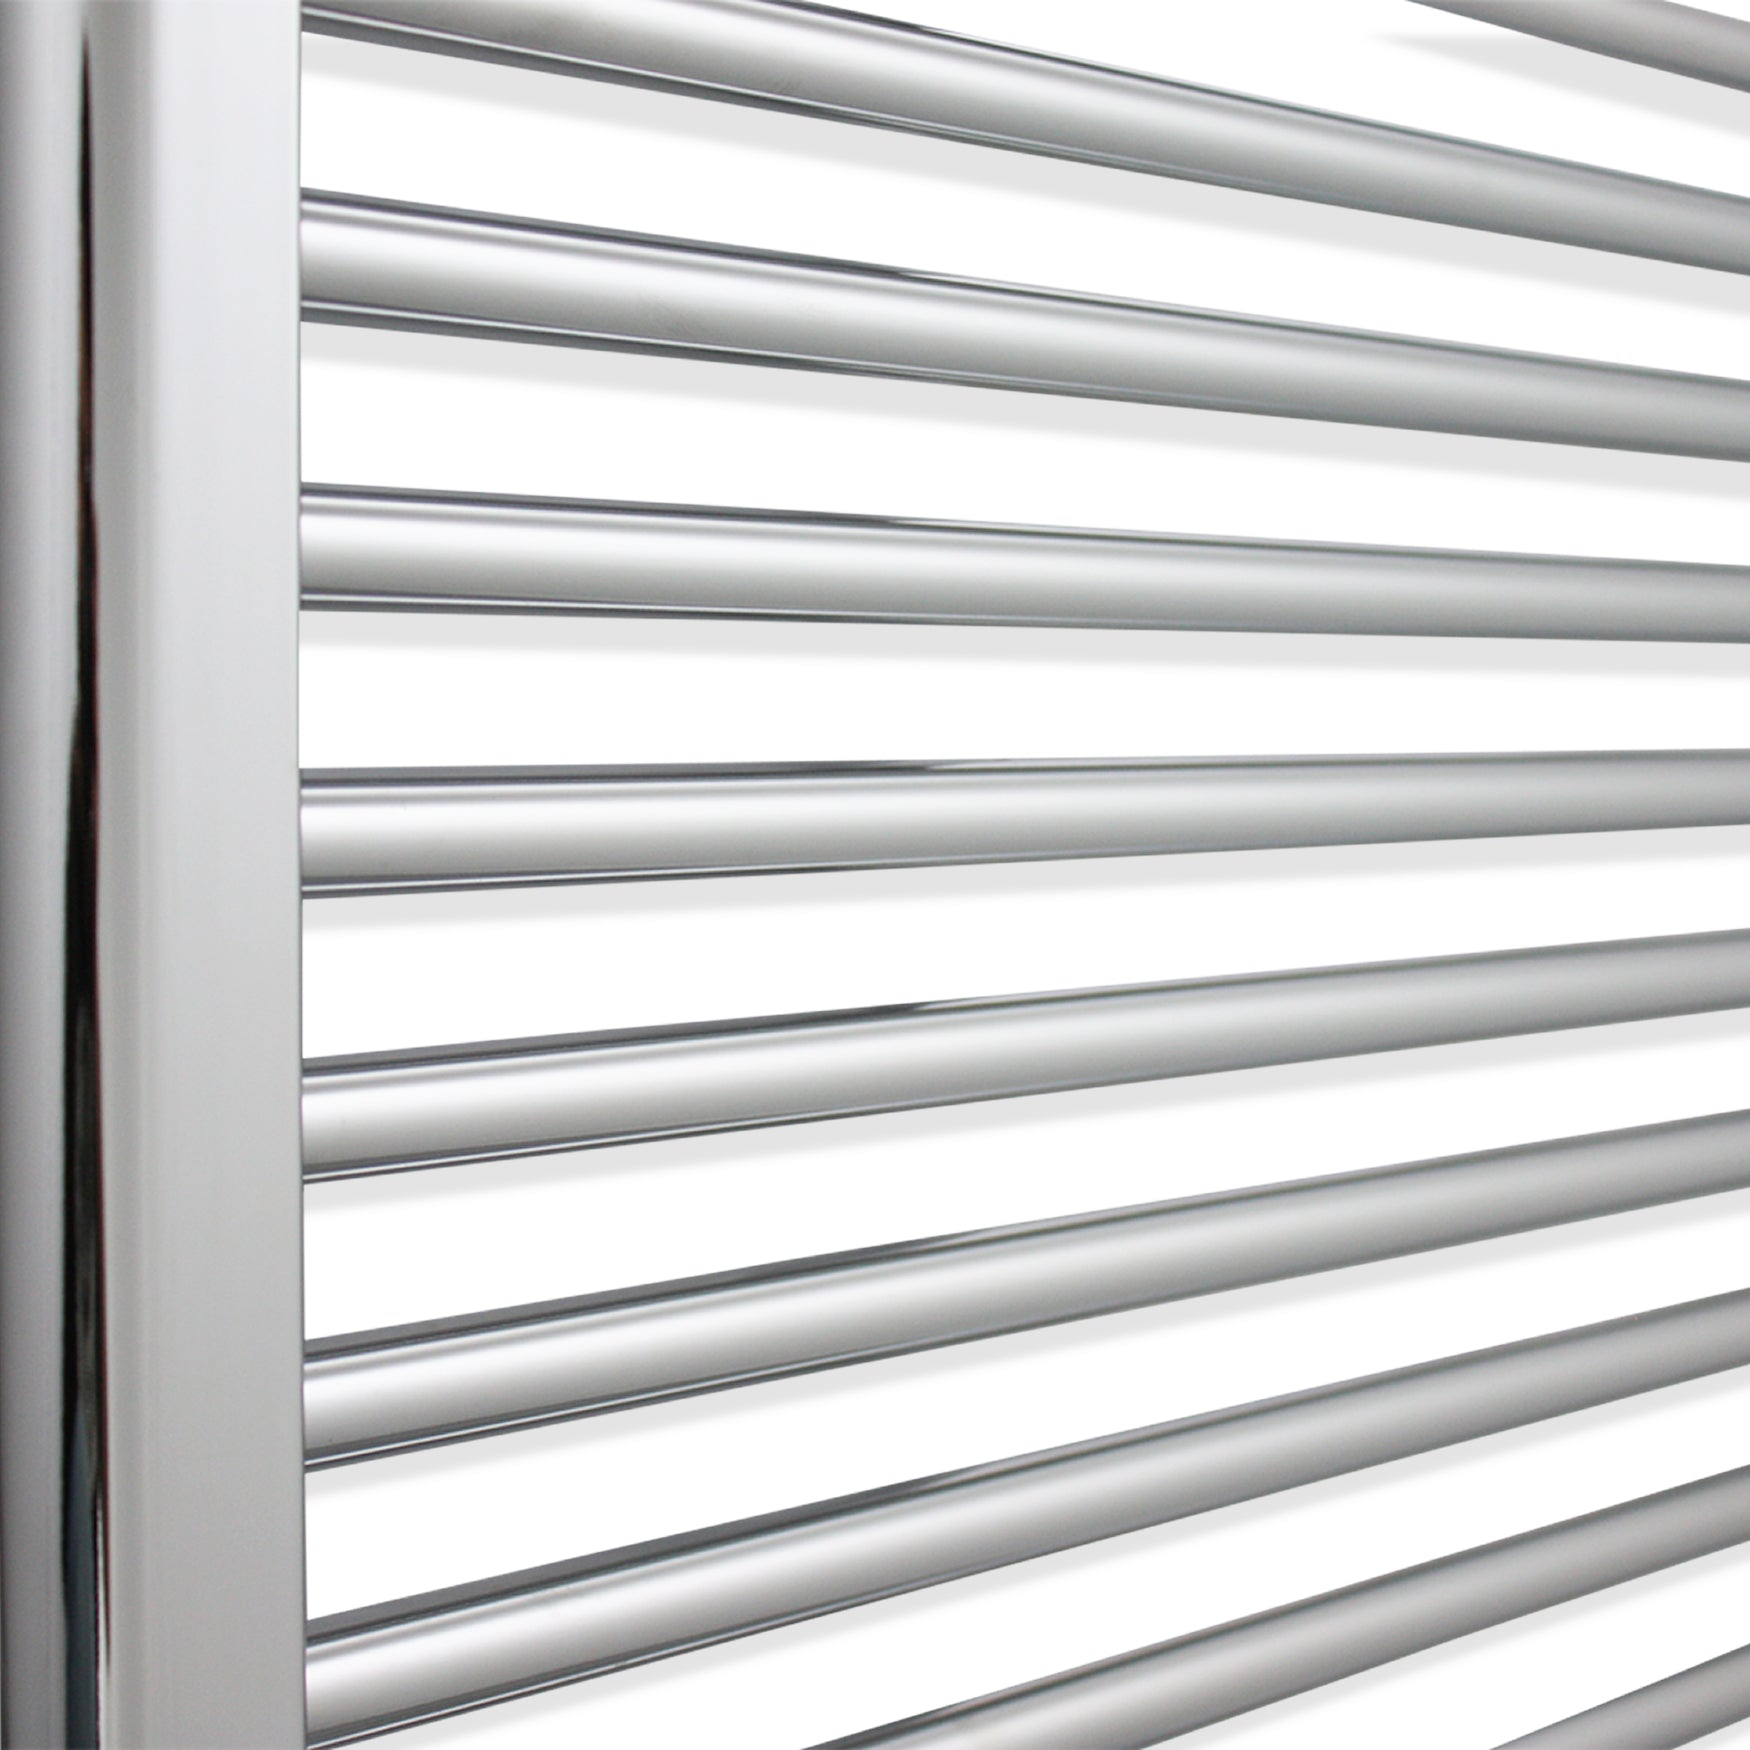 550mm Wide 1300mm High Straight Chrome Heated Towel Rail Radiator HTR Central Heating